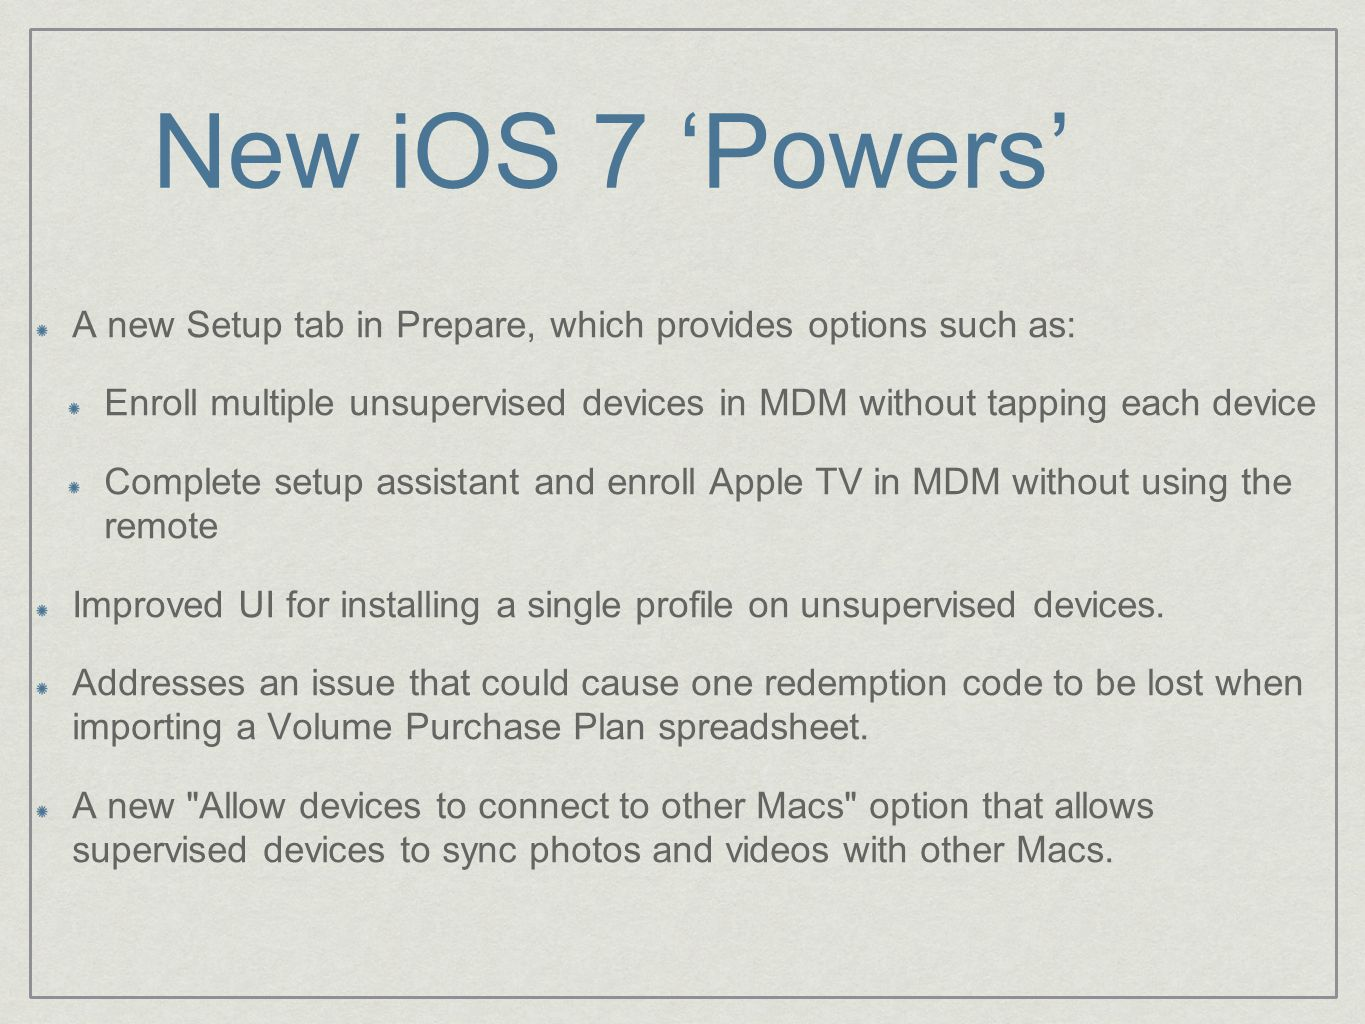 New iOS 7 'Powers' A new Setup tab in Prepare, which provides options such as: Enroll multiple unsupervised devices in MDM without tapping each device Complete setup assistant and enroll Apple TV in MDM without using the remote Improved UI for installing a single profile on unsupervised devices.